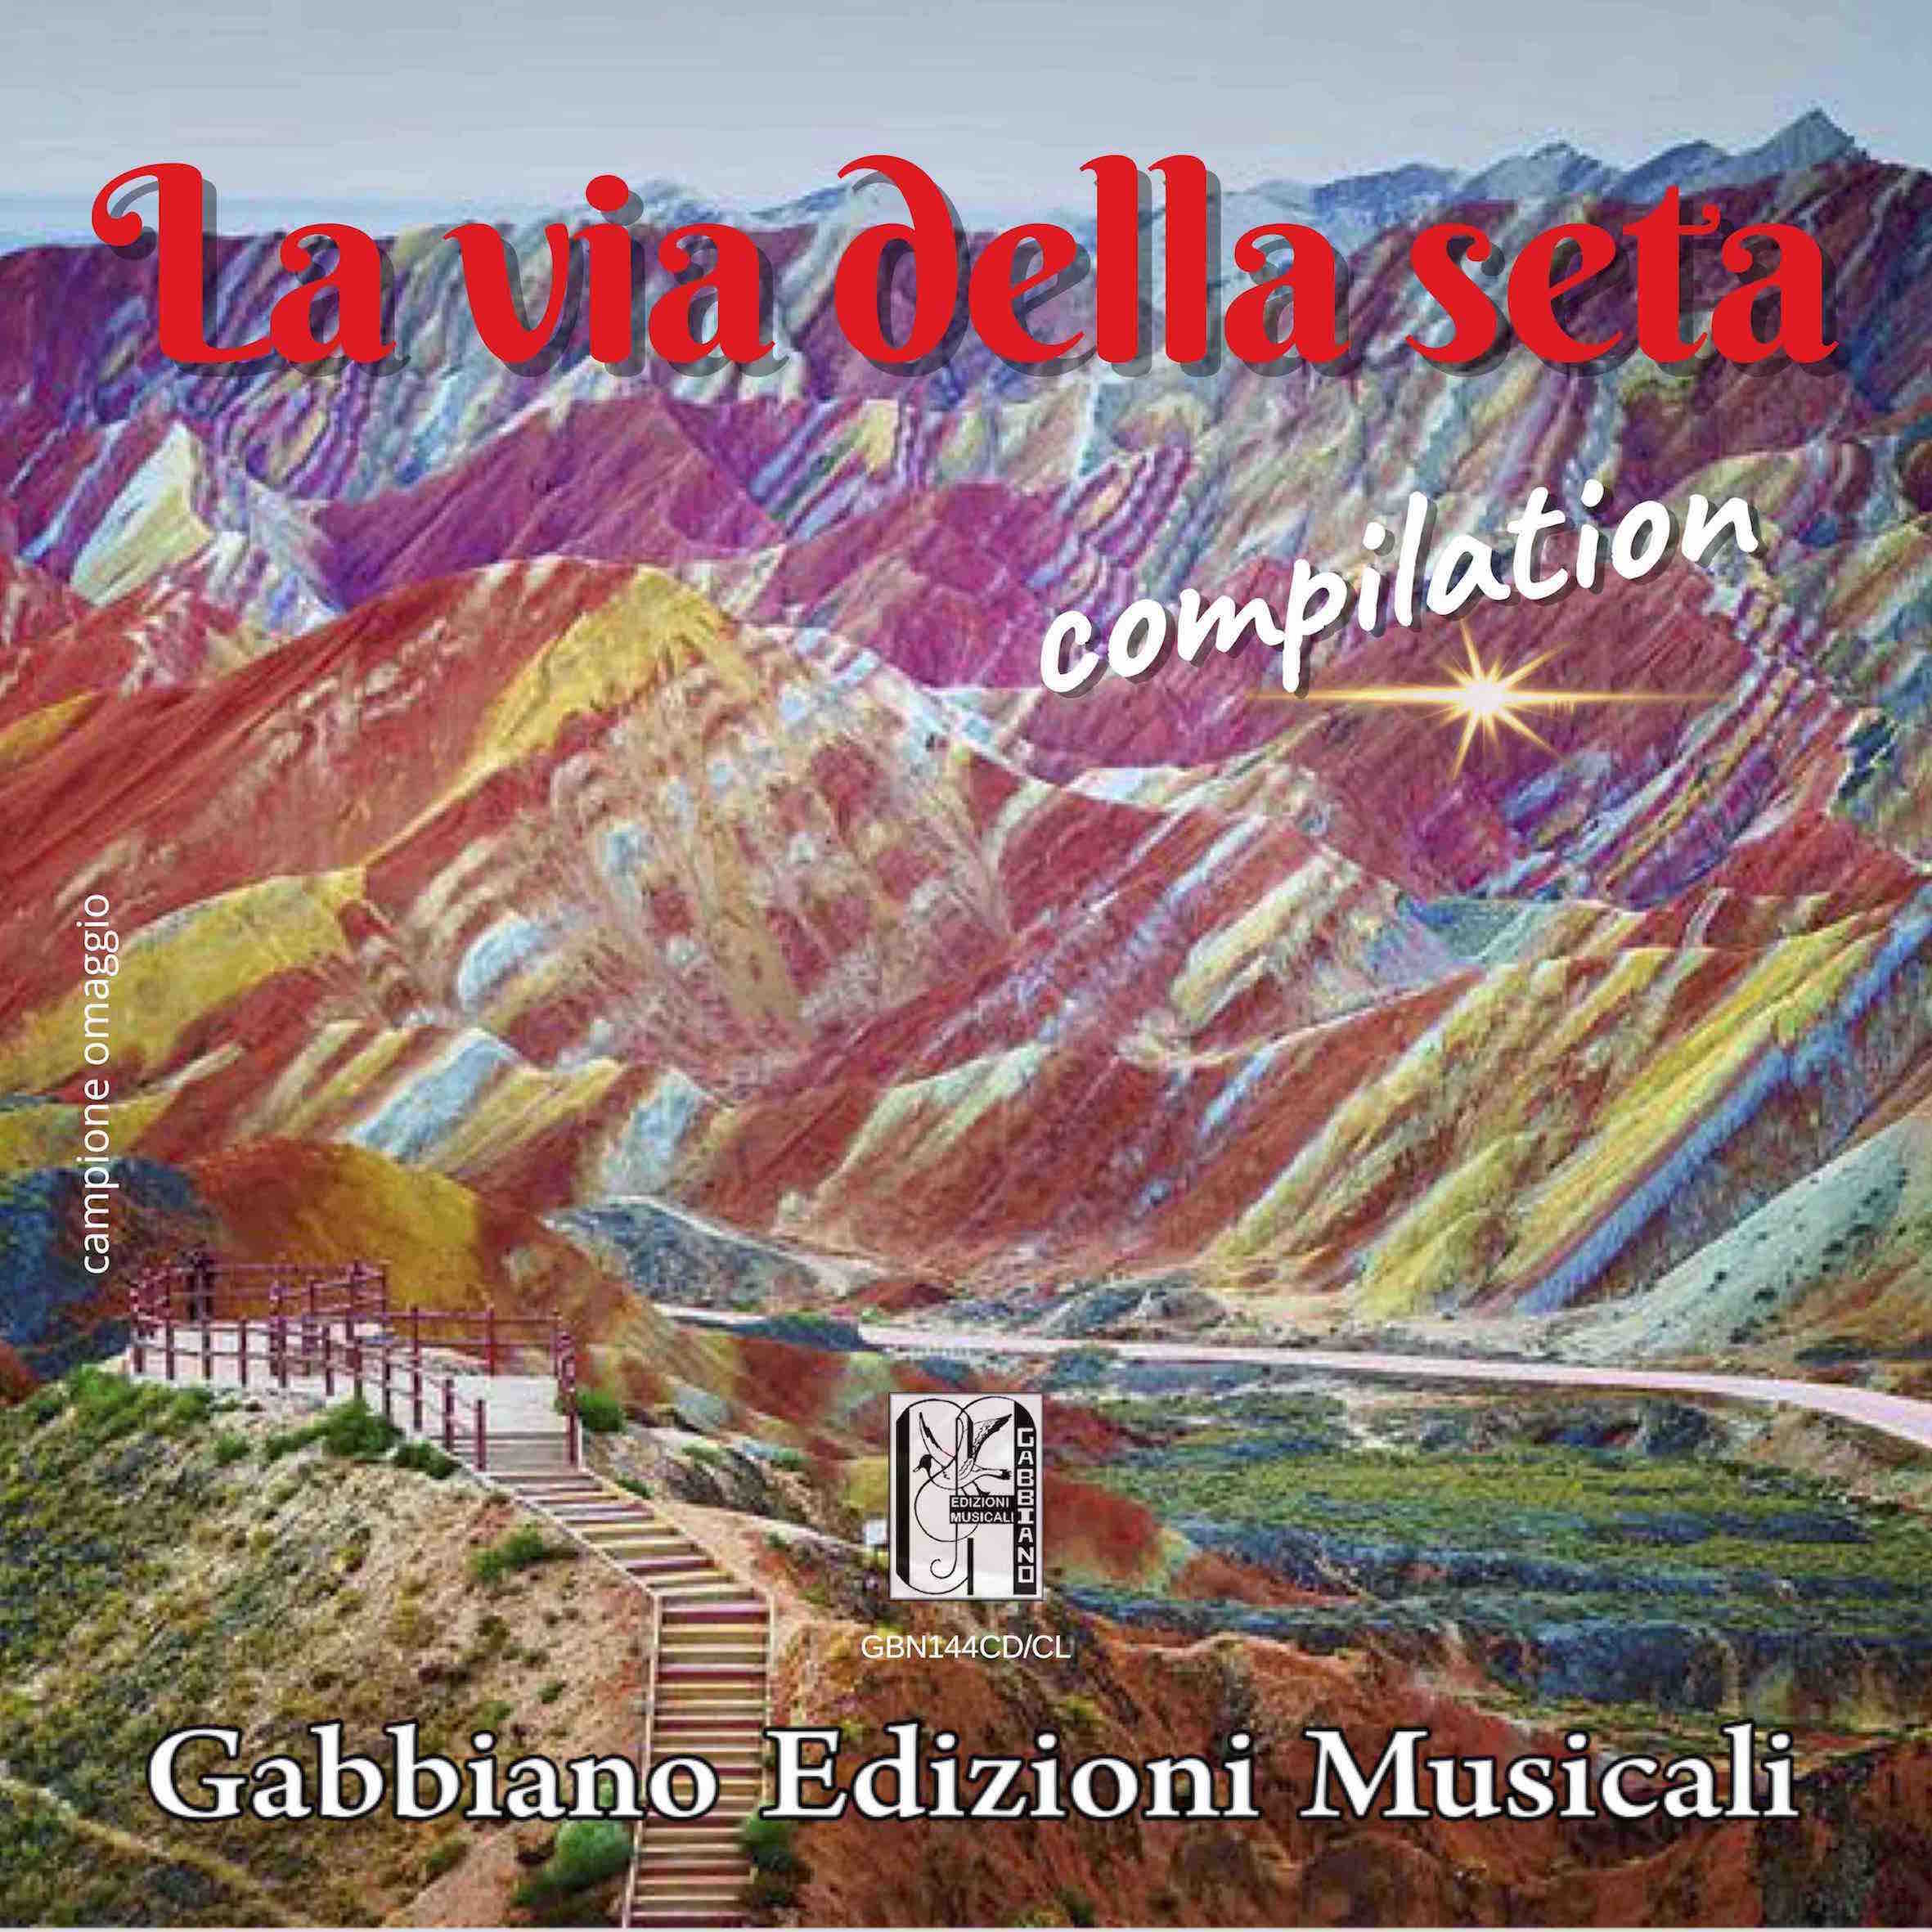 GBN144CD/CL - LA VIA DELLA SETA (compilation) - Volume 44